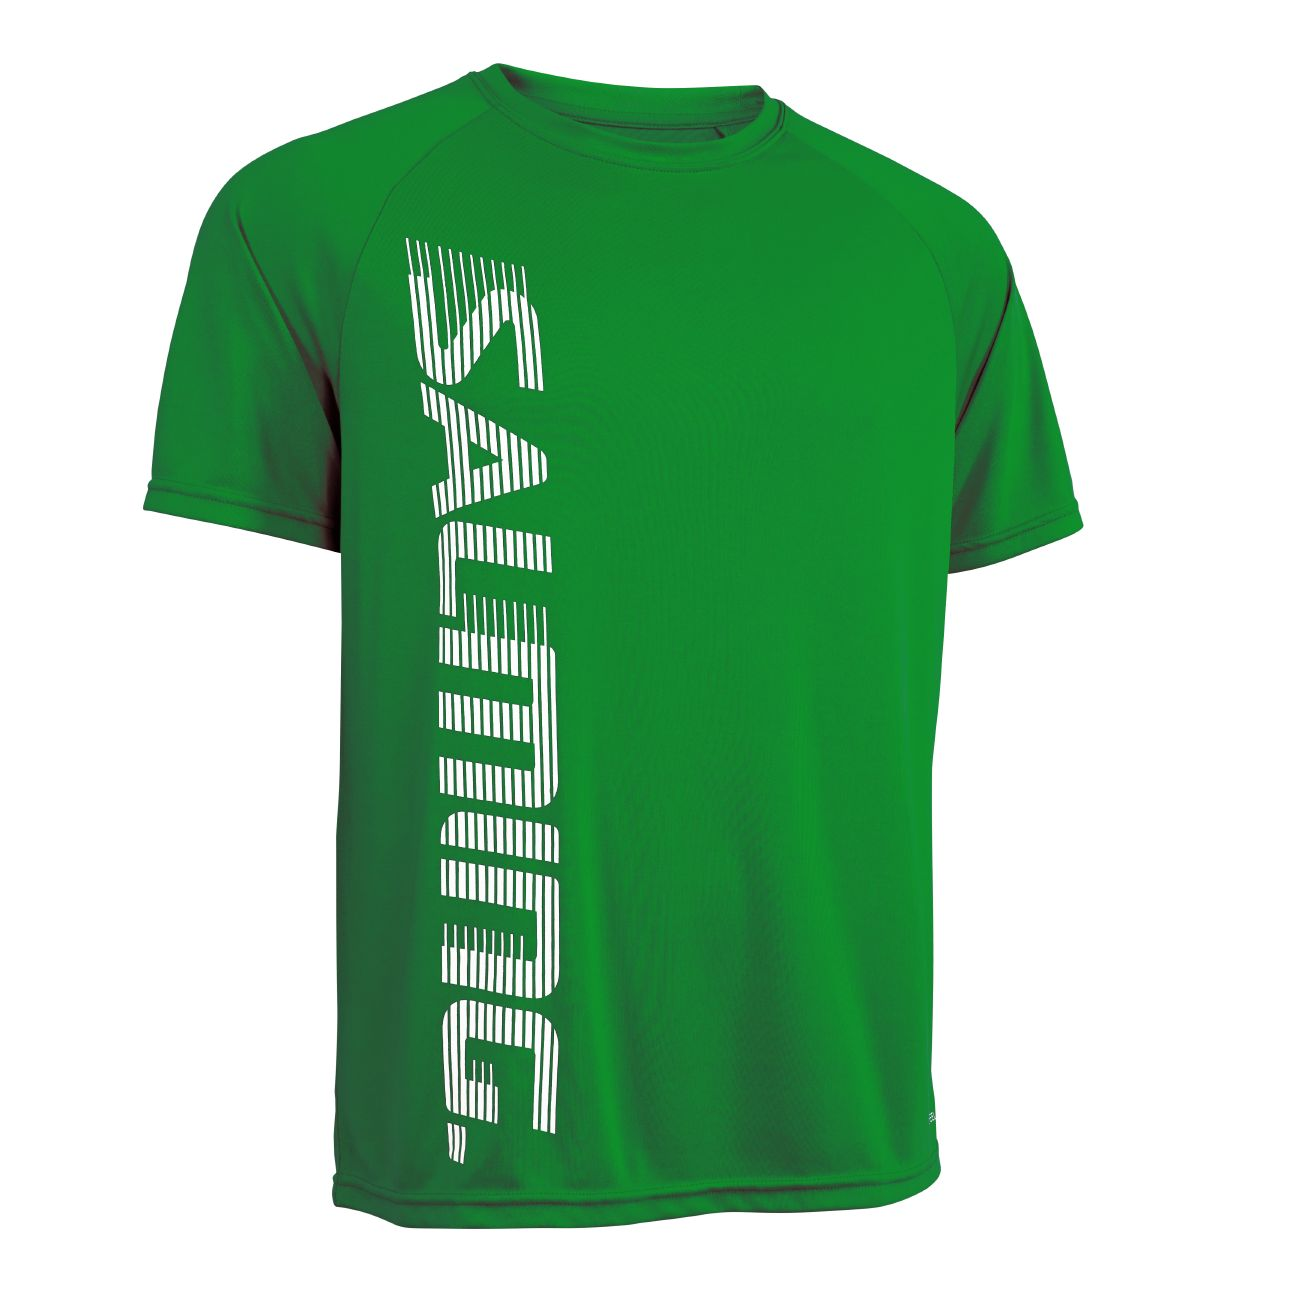 Salming Training Tee 2.0 Červená, L